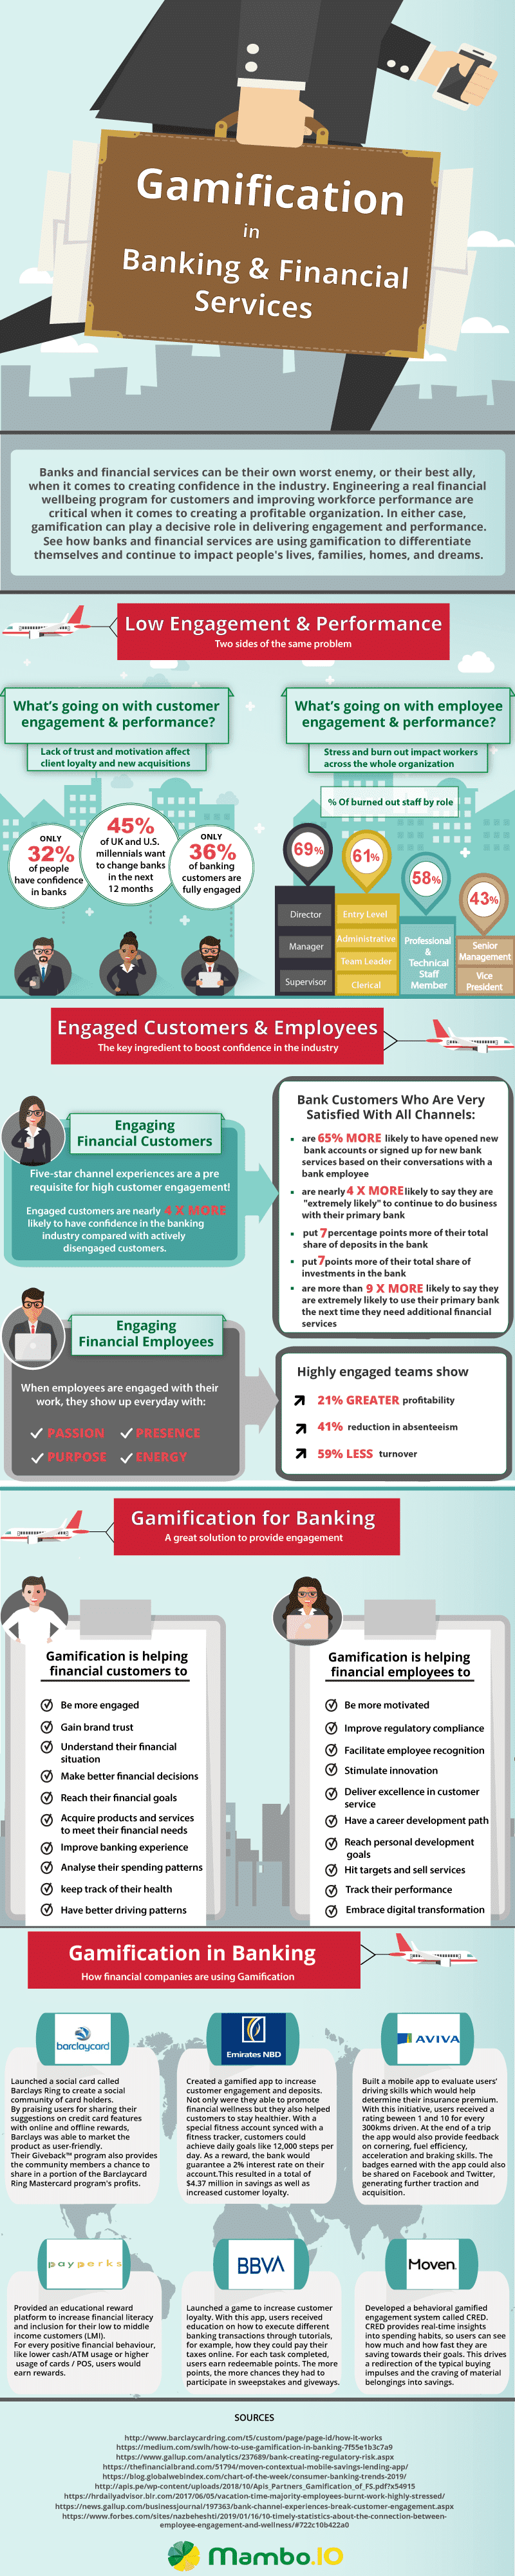 Gamification in Banking & Financial Services #infographic